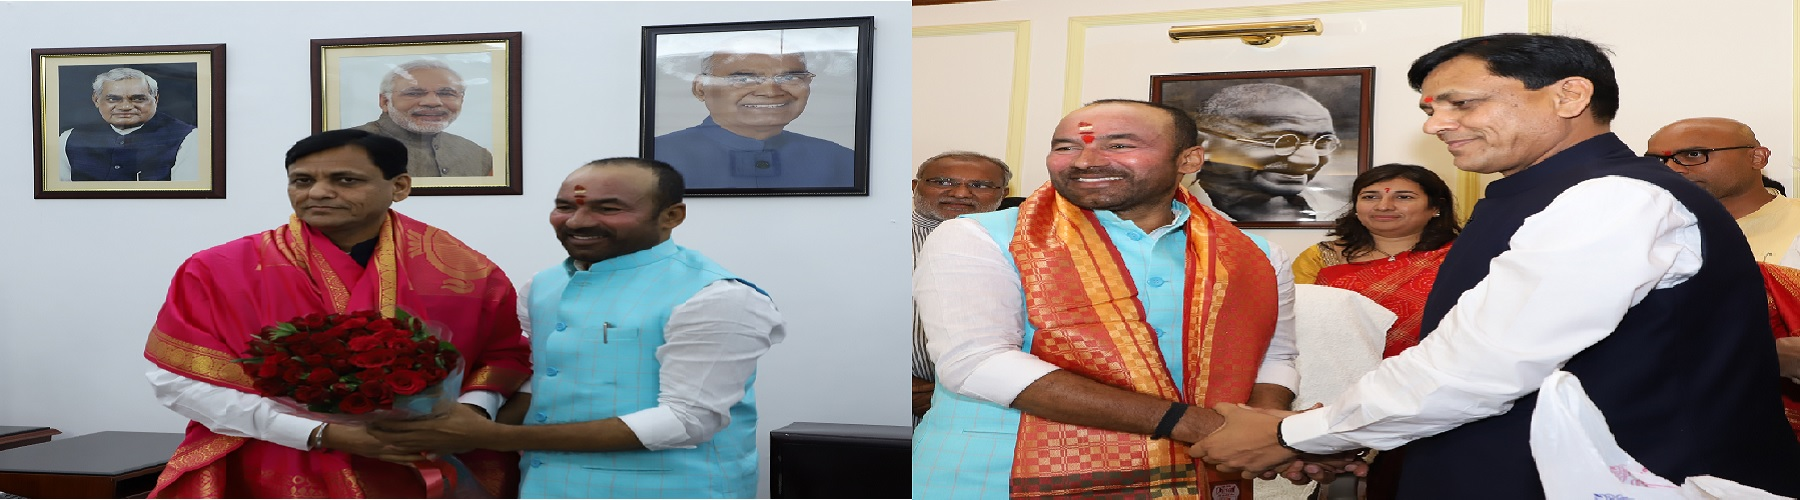 Shri G. Kishan Reddy & Shri Nityanand Rai exchanging greetings after taking charge of office of Union Ministers of State for Home Affairs in New Delhi on Saturday, June 1, 2019.